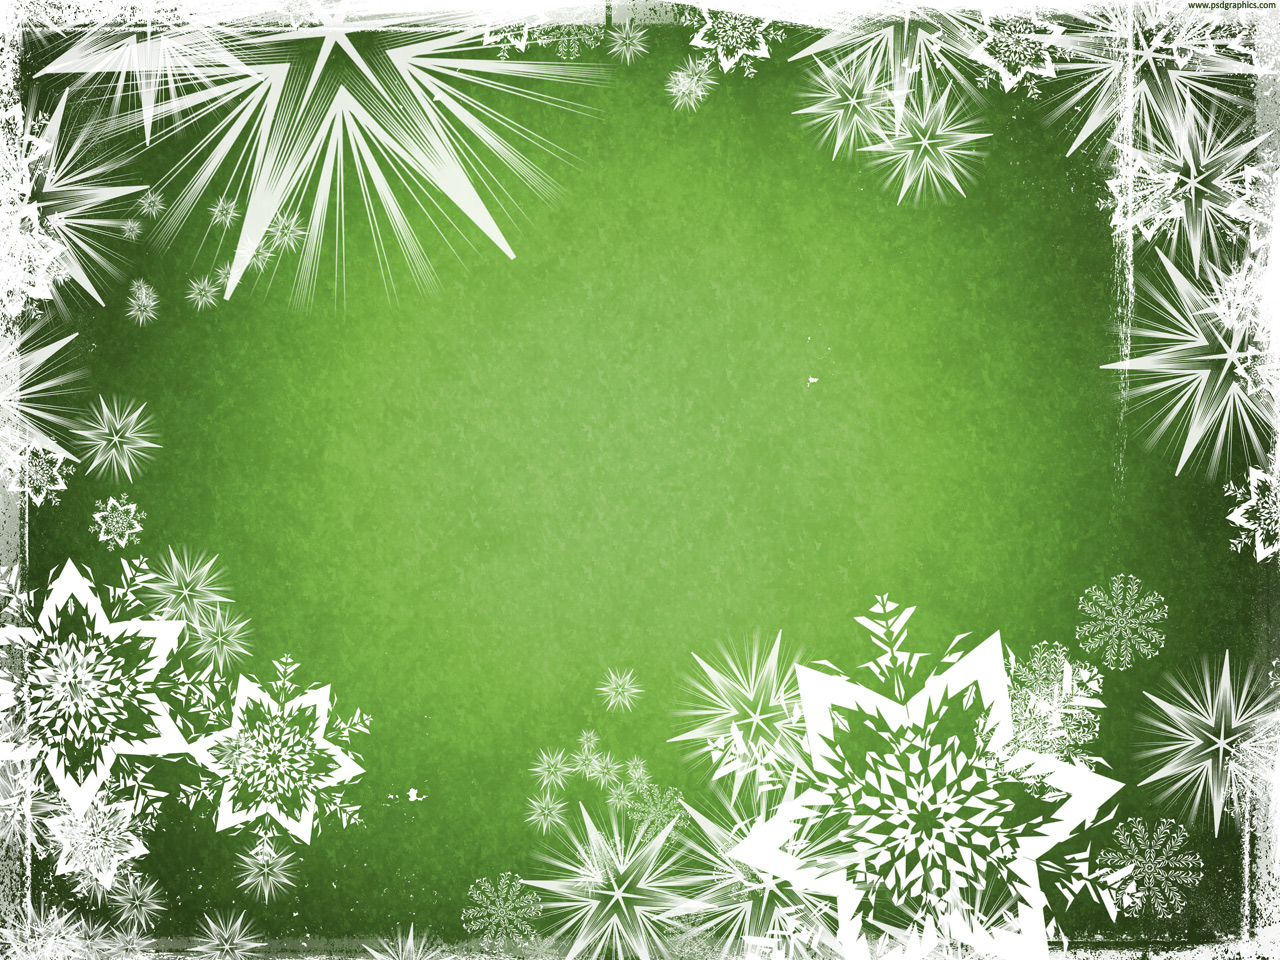 Green Christmas background | PSDGraphics